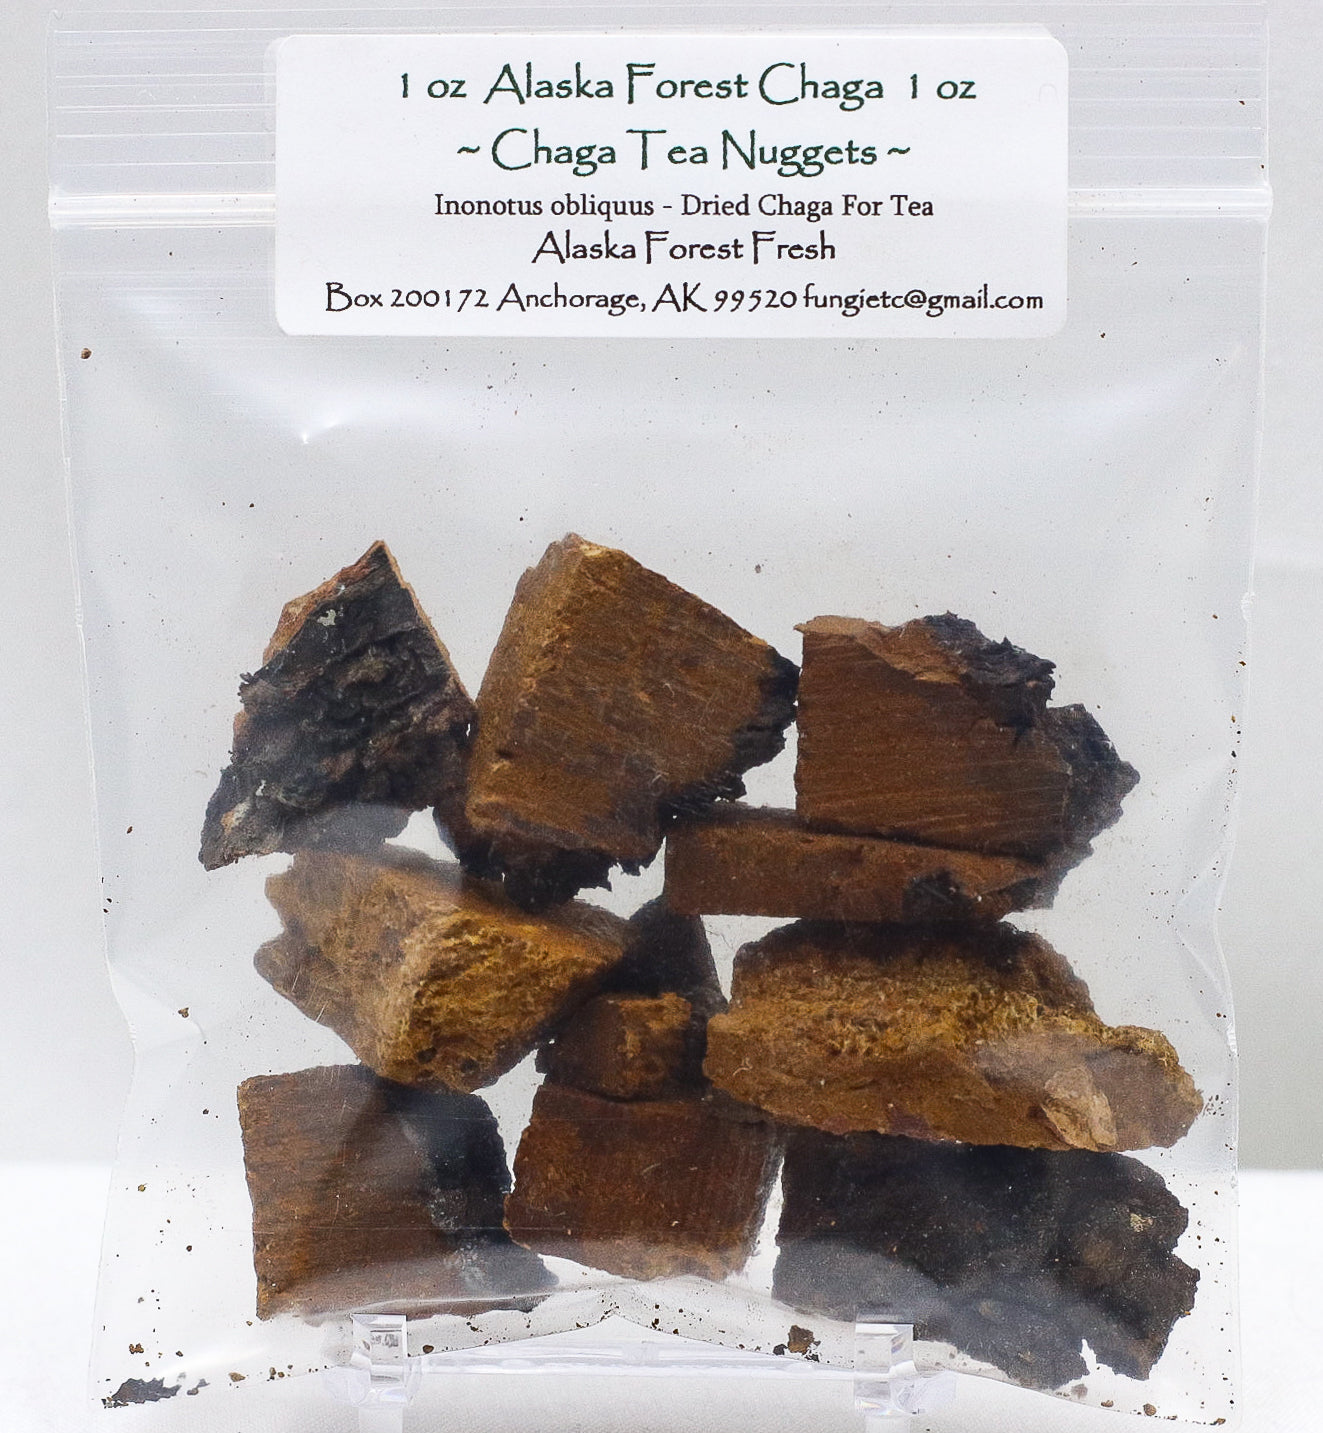 DRIED ALASKA FOREST CHAGA PIECES FOR TEA 1 OZ BAG